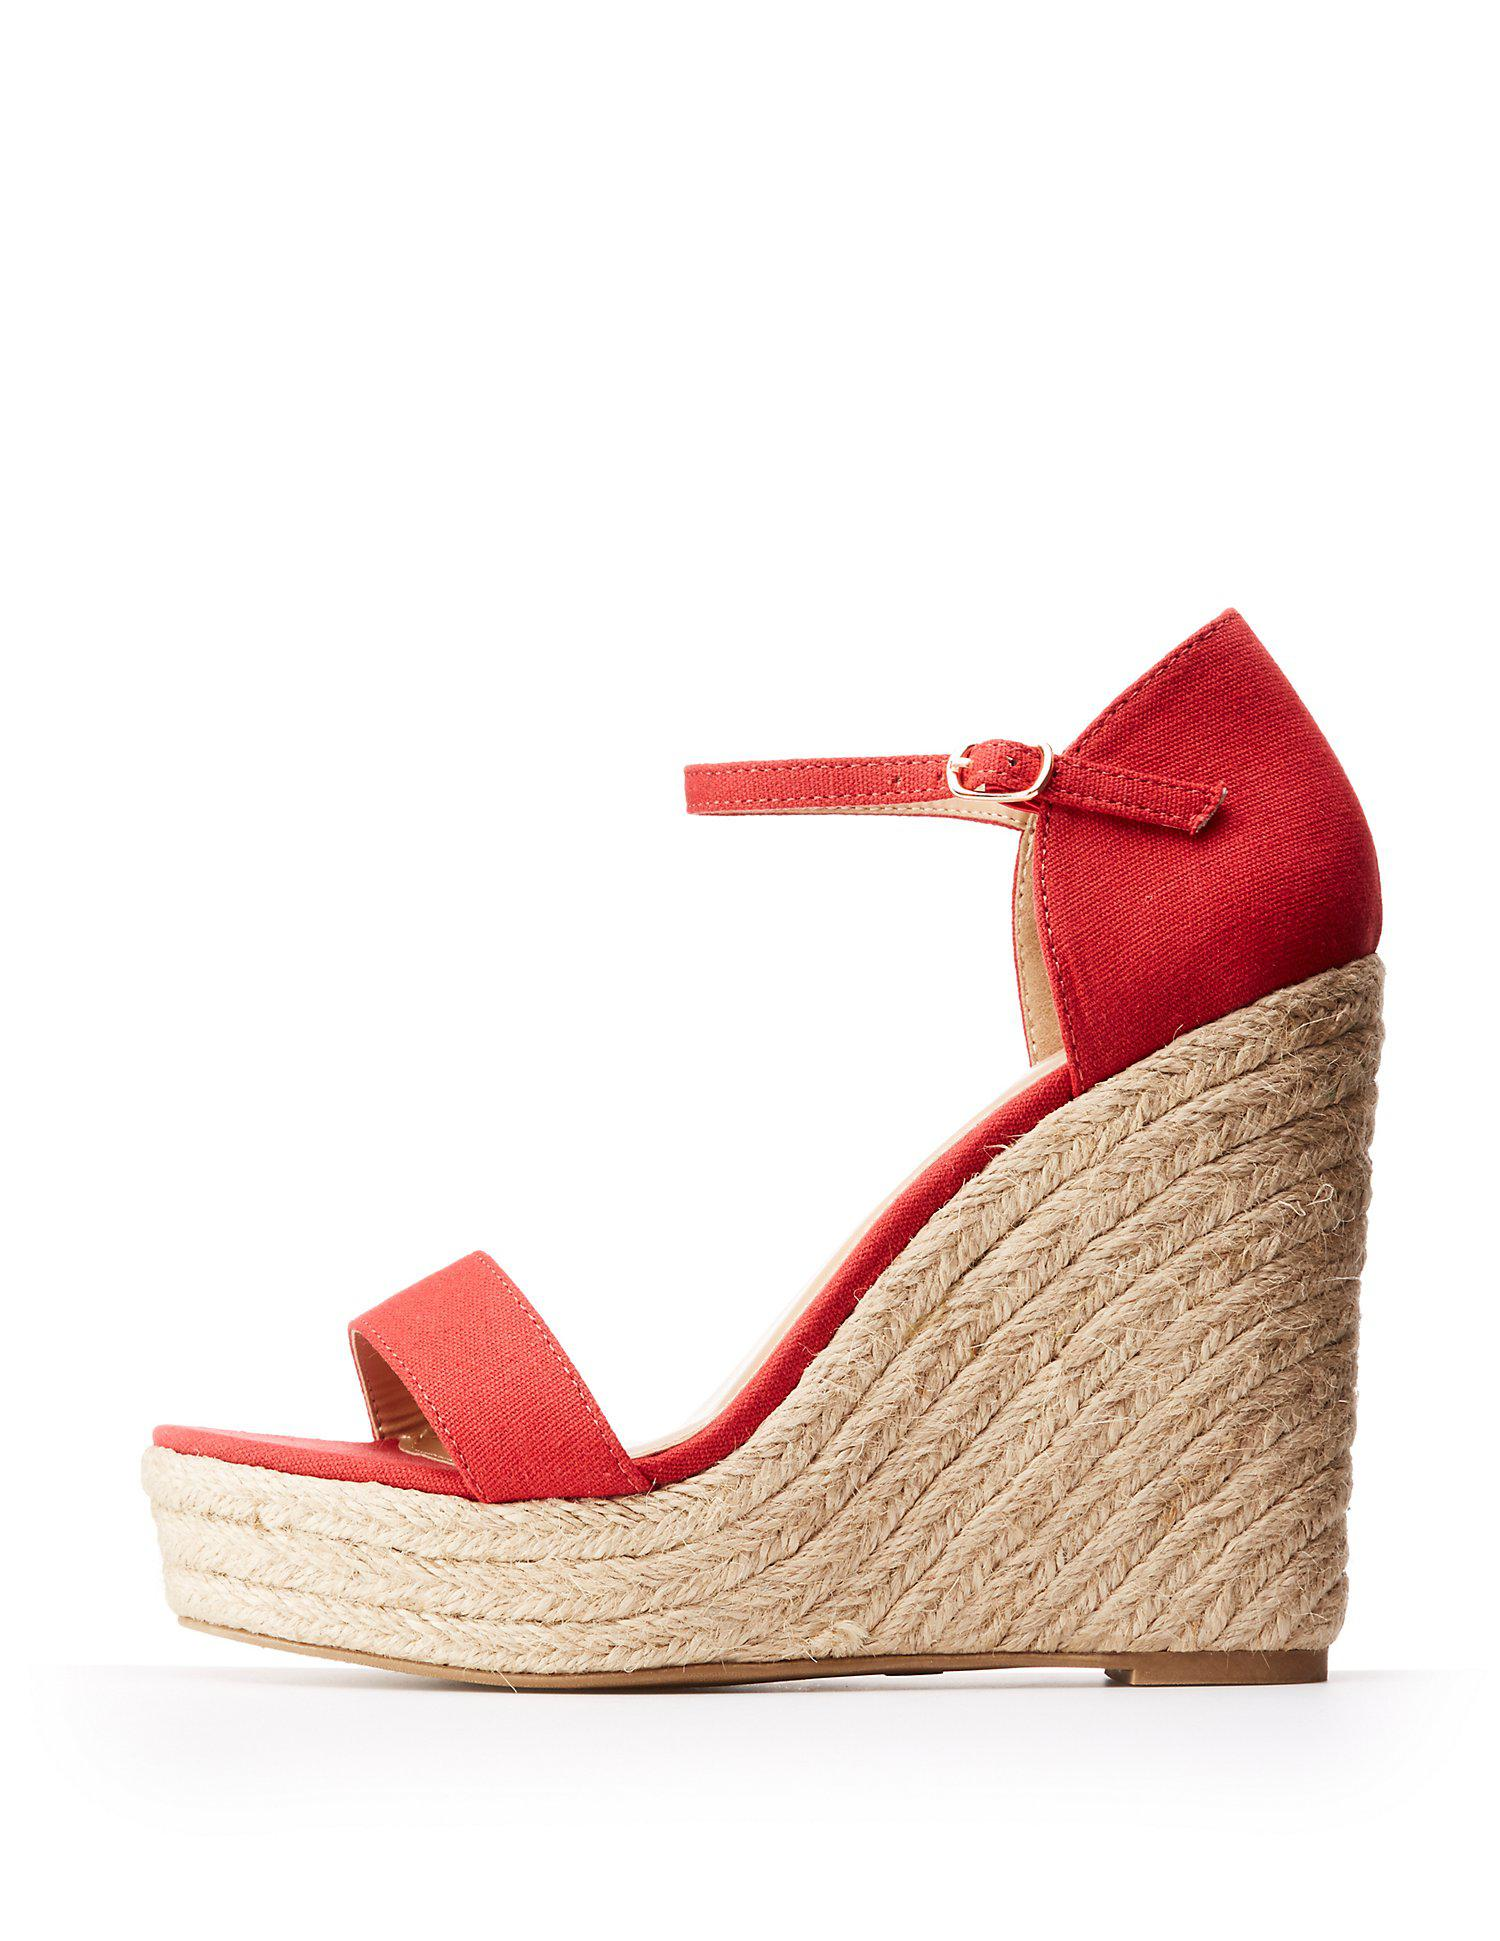 5d54a1435bed Lyst - Charlotte Russe Ankle Strap Espadrille Wedge Sandals in Red